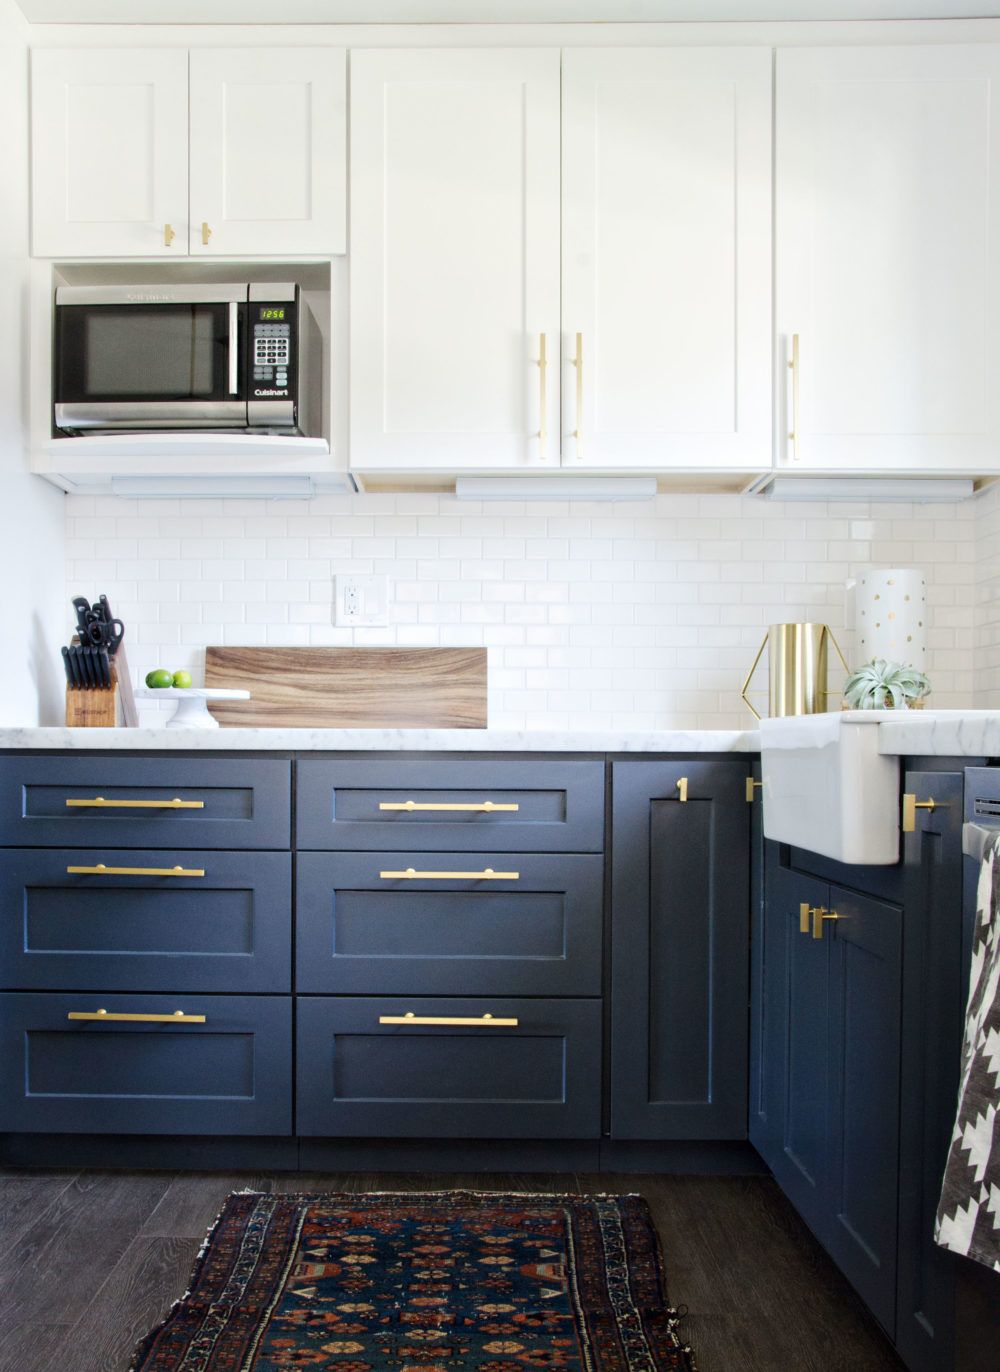 2020 Kitchen Trends You'll Be Seeing Everywhere